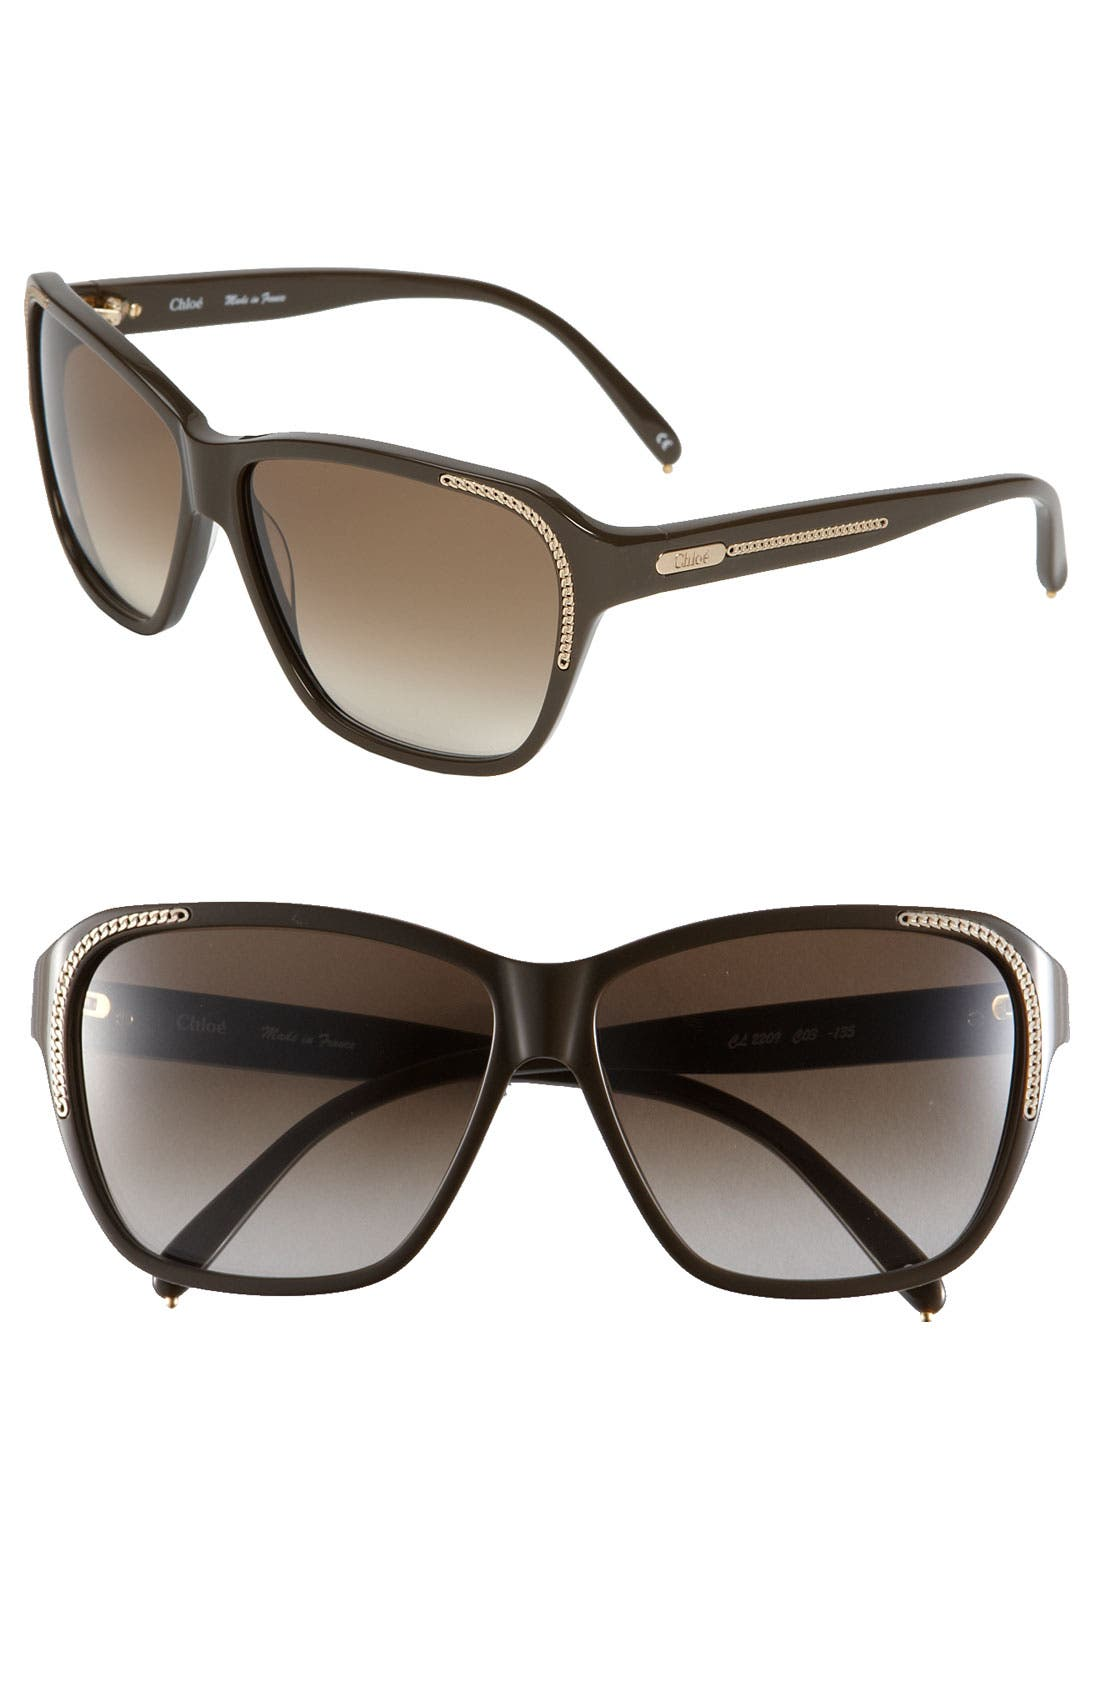 Main Image - Chloé '2209' Sunglasses